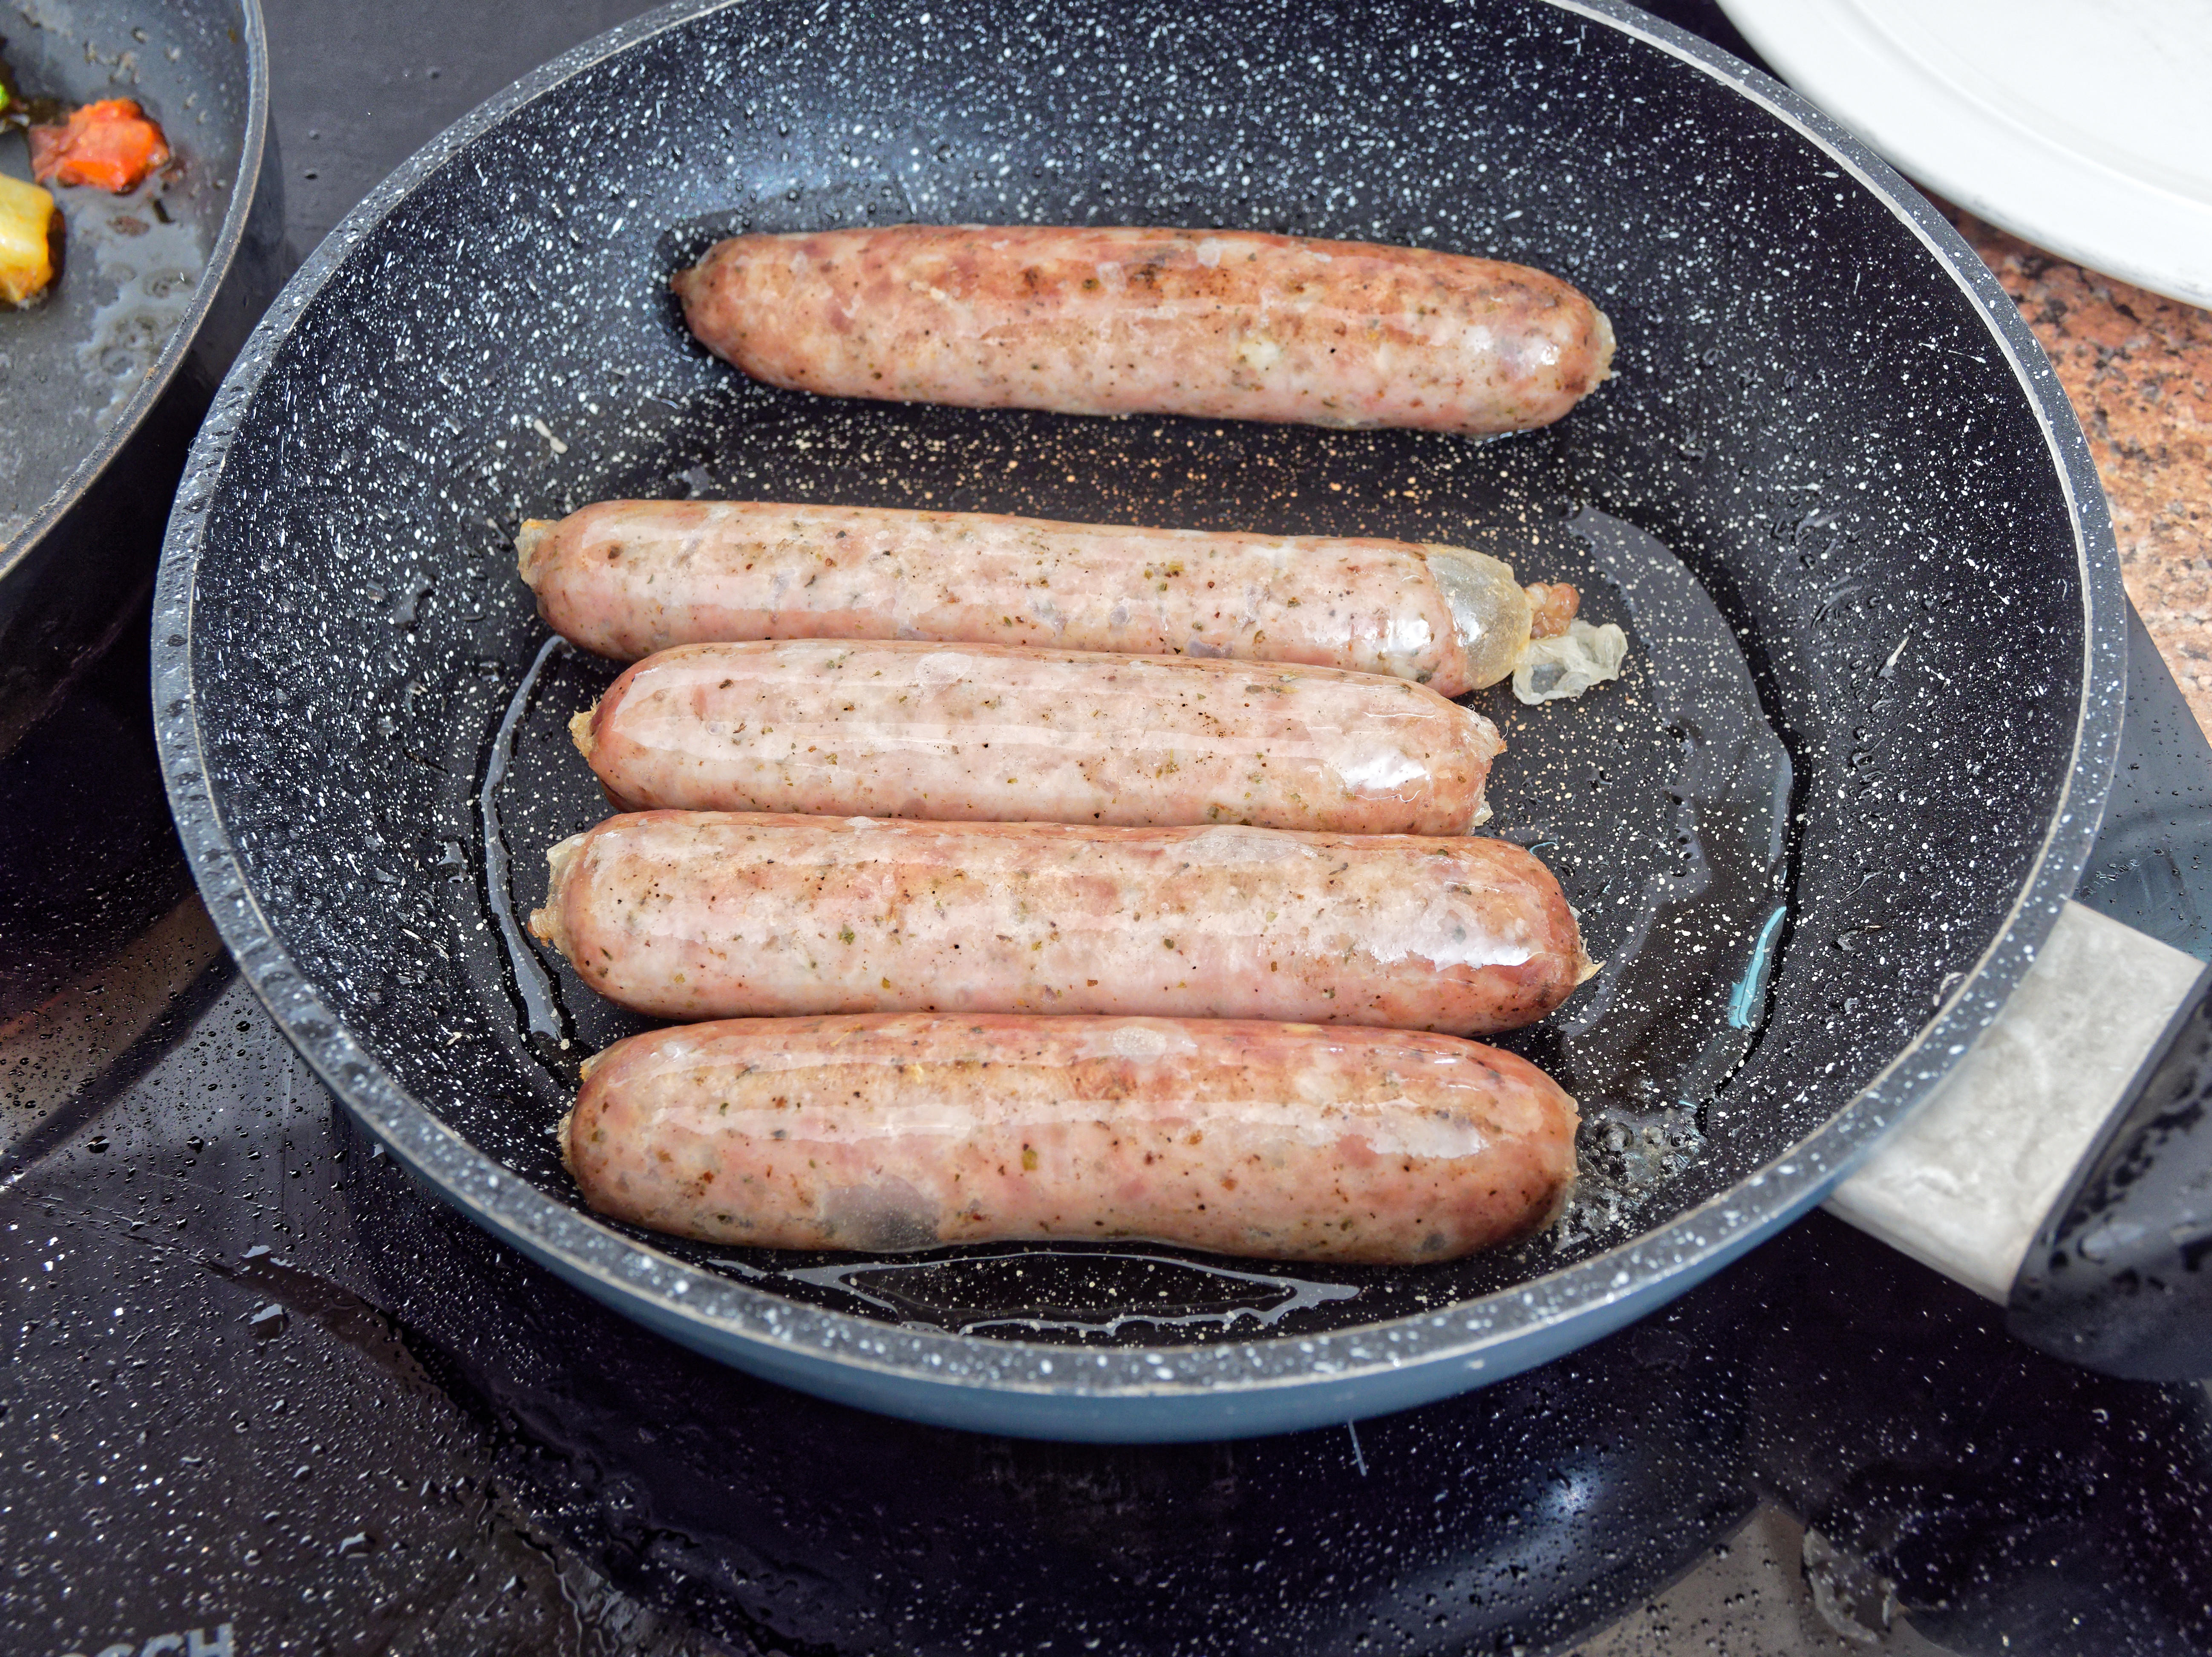 This should be Bratwurst-3.jpeg.  Is it missing?